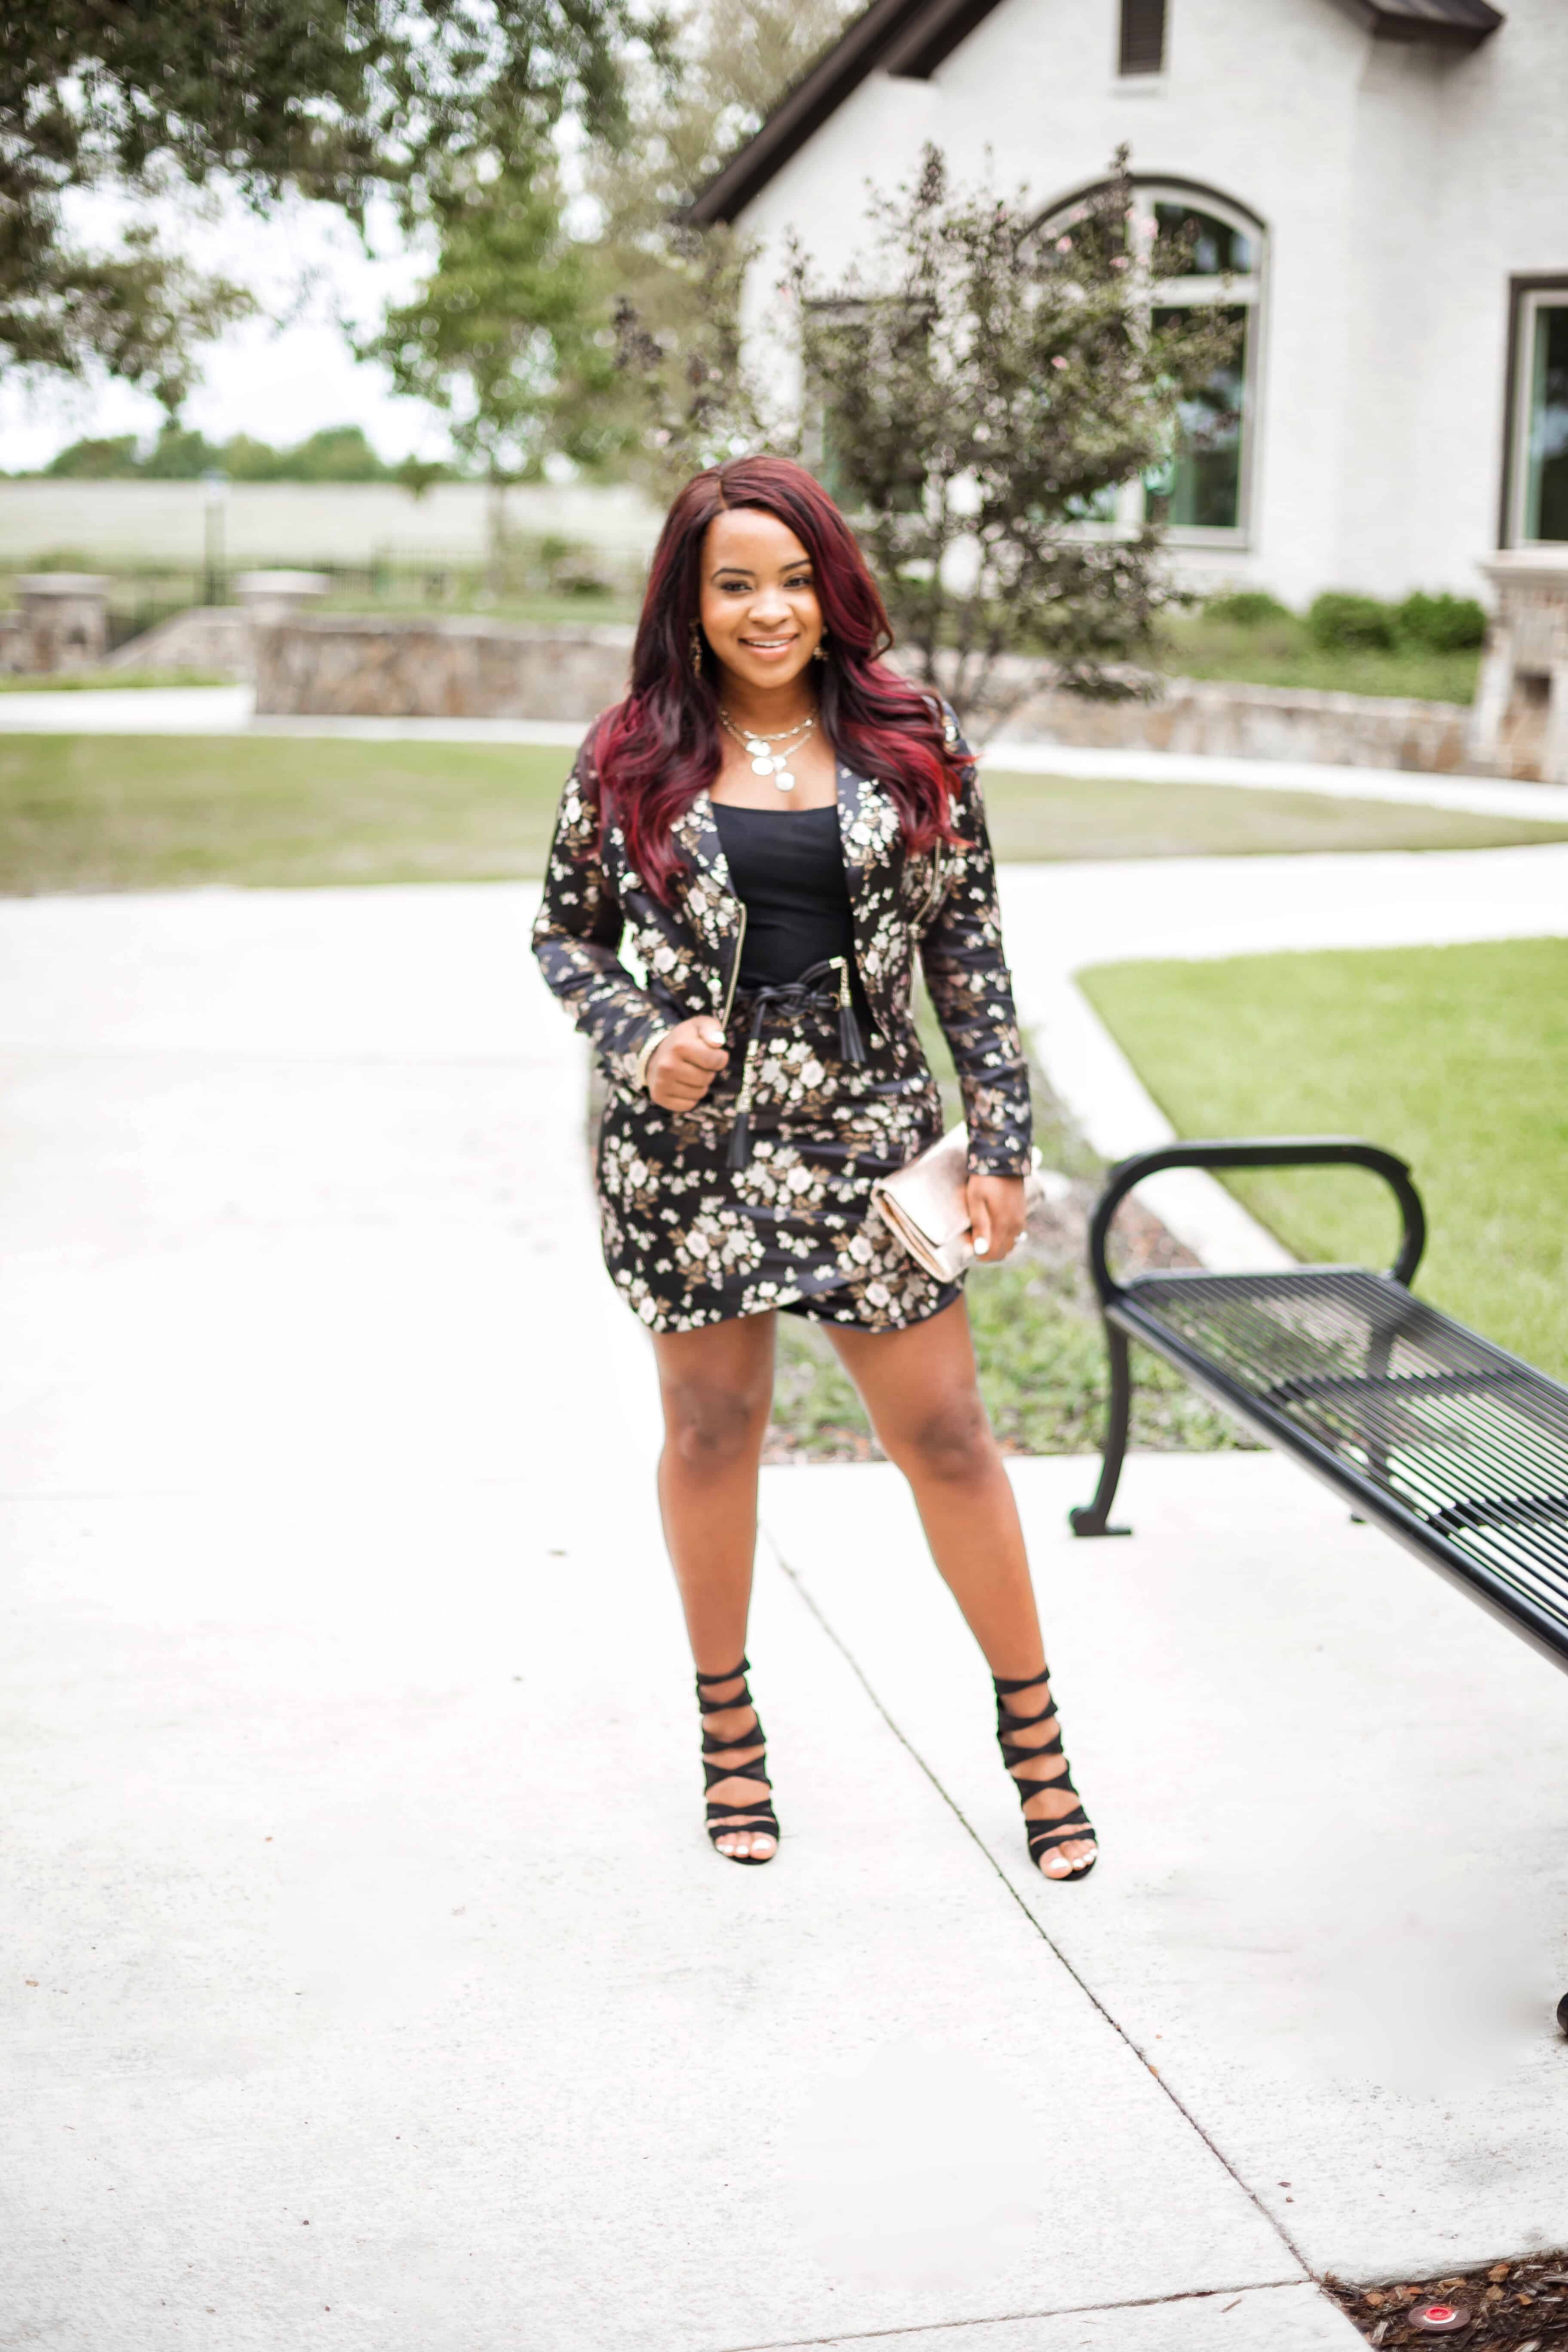 Bookmark this post ASAP! See how Dallas Lifestyle Blogger Glamorous Versatility is sharing her tips to elevating her outfit just in time for date night with your spouse.